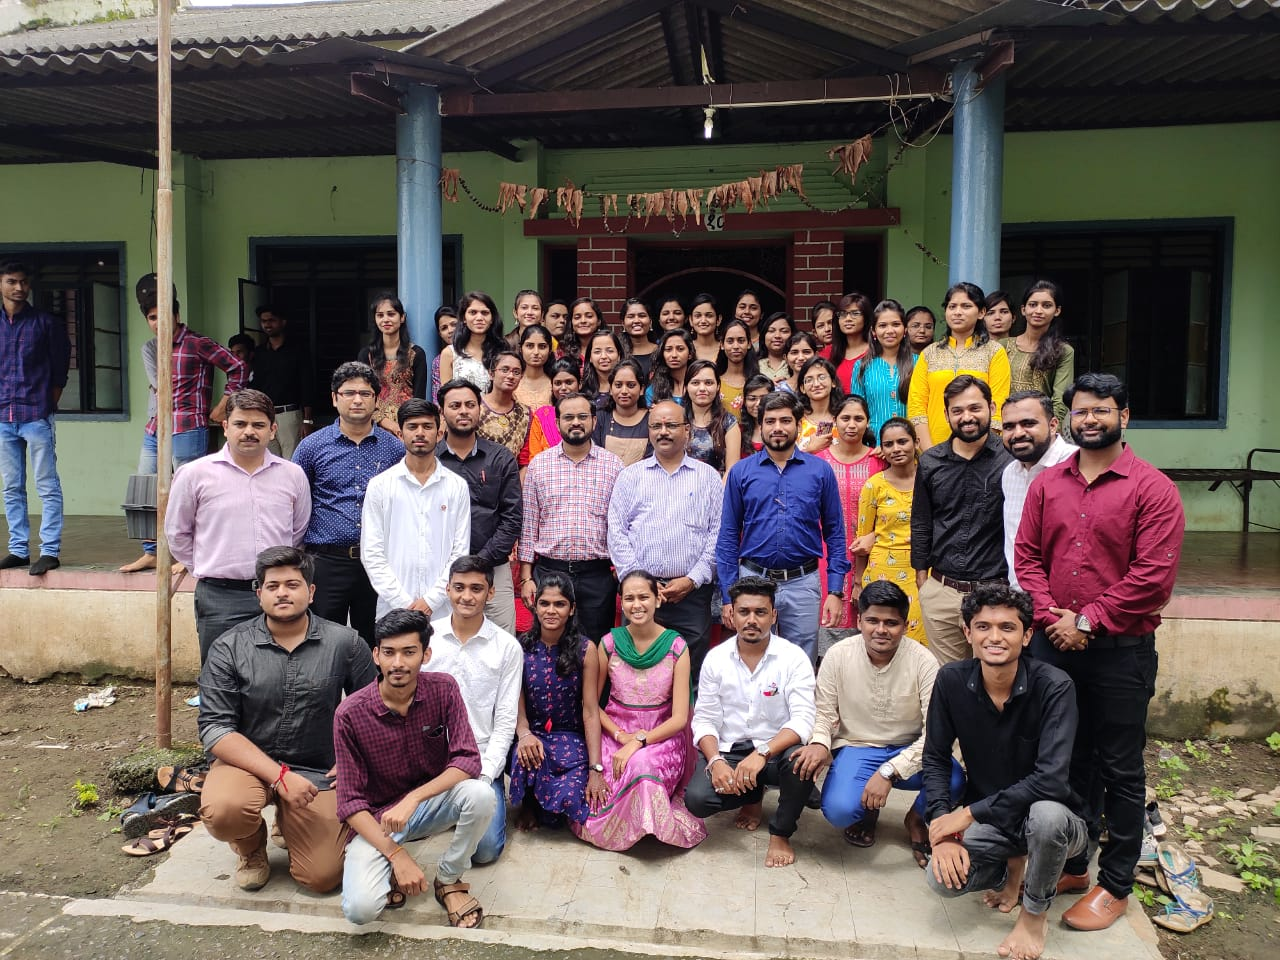 Teacher' s day is celebrated on 5th September by Department of I. T. and its students, celebrated this day in a social way. This time, the students along with the teachers went to Matoshri Old Age Home, with all the residents of Old Age Home.